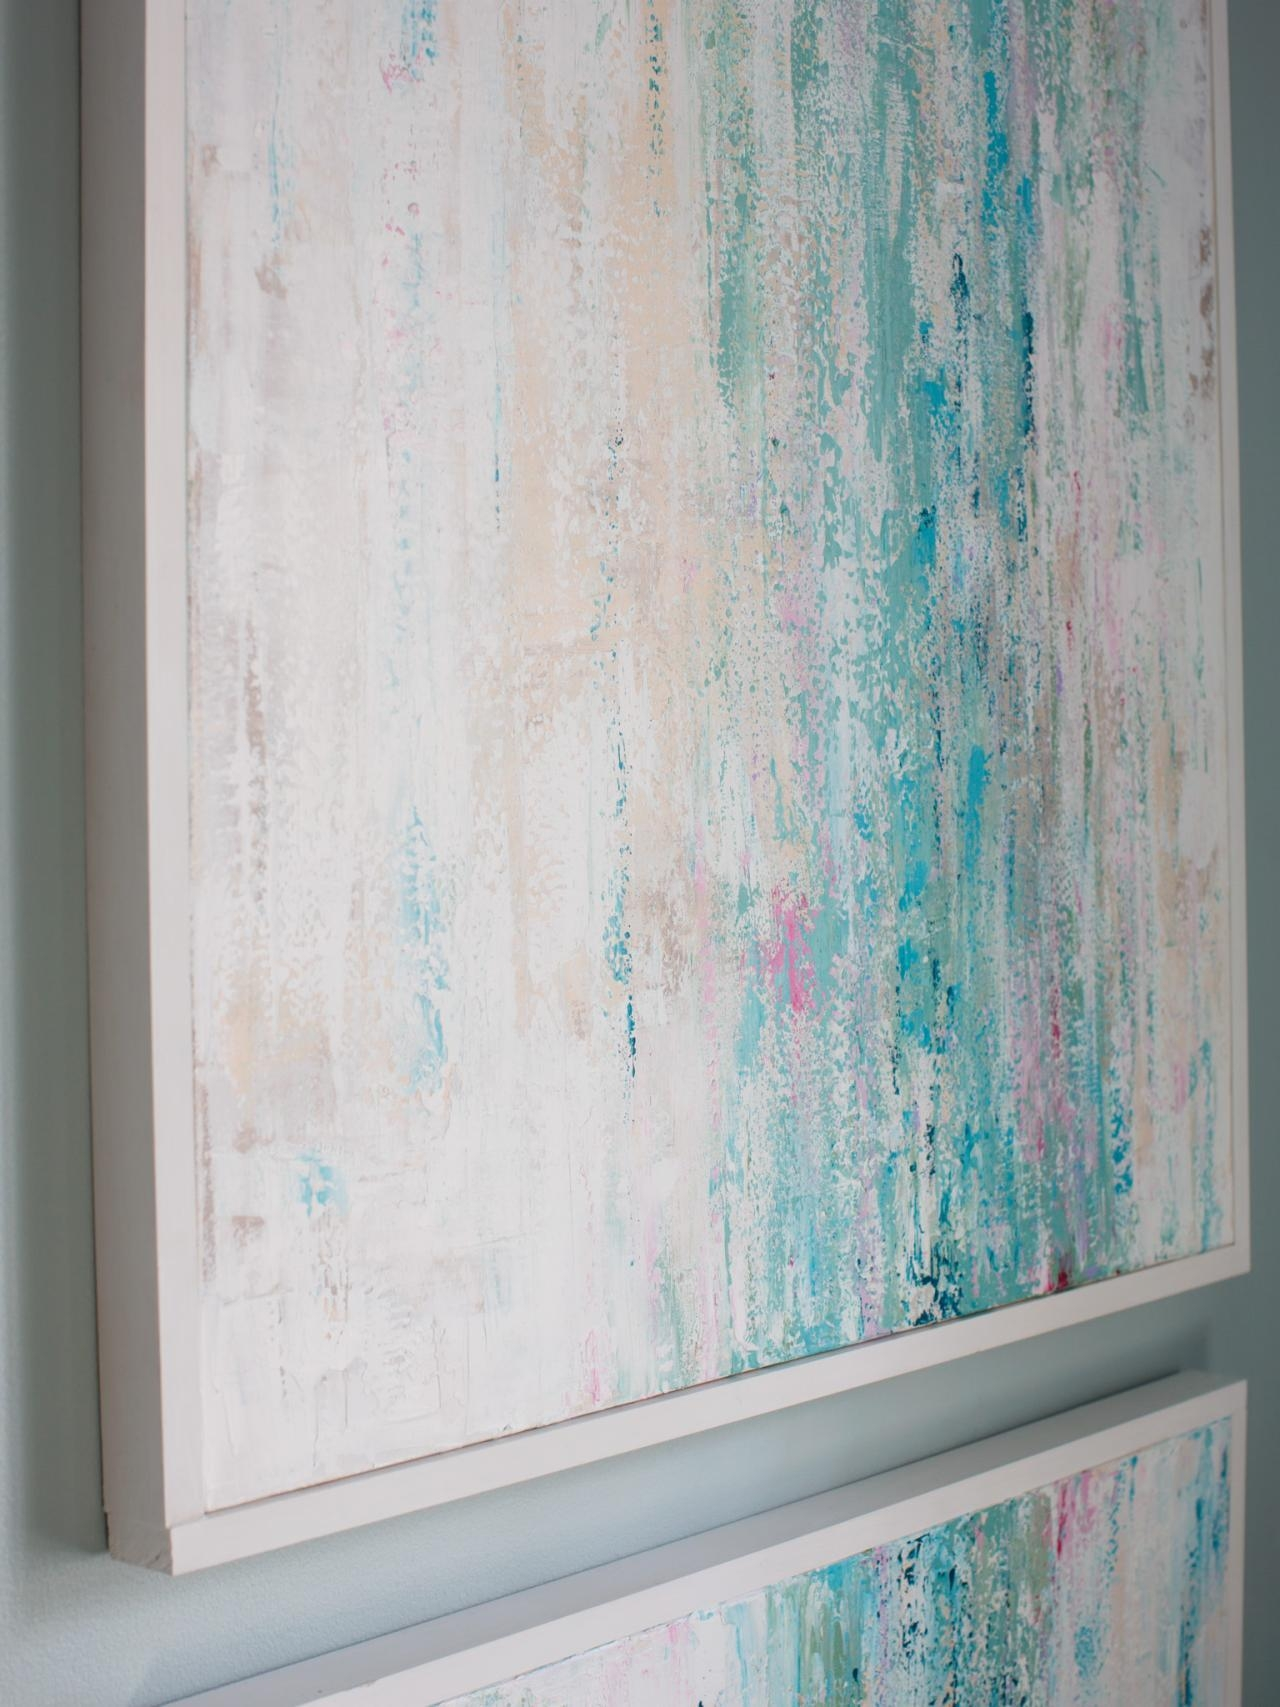 18 Genius Wall Decor Ideas | Hgtv's Decorating & Design Blog | Hgtv Within Paint Swatch Wall Art (Image 2 of 20)